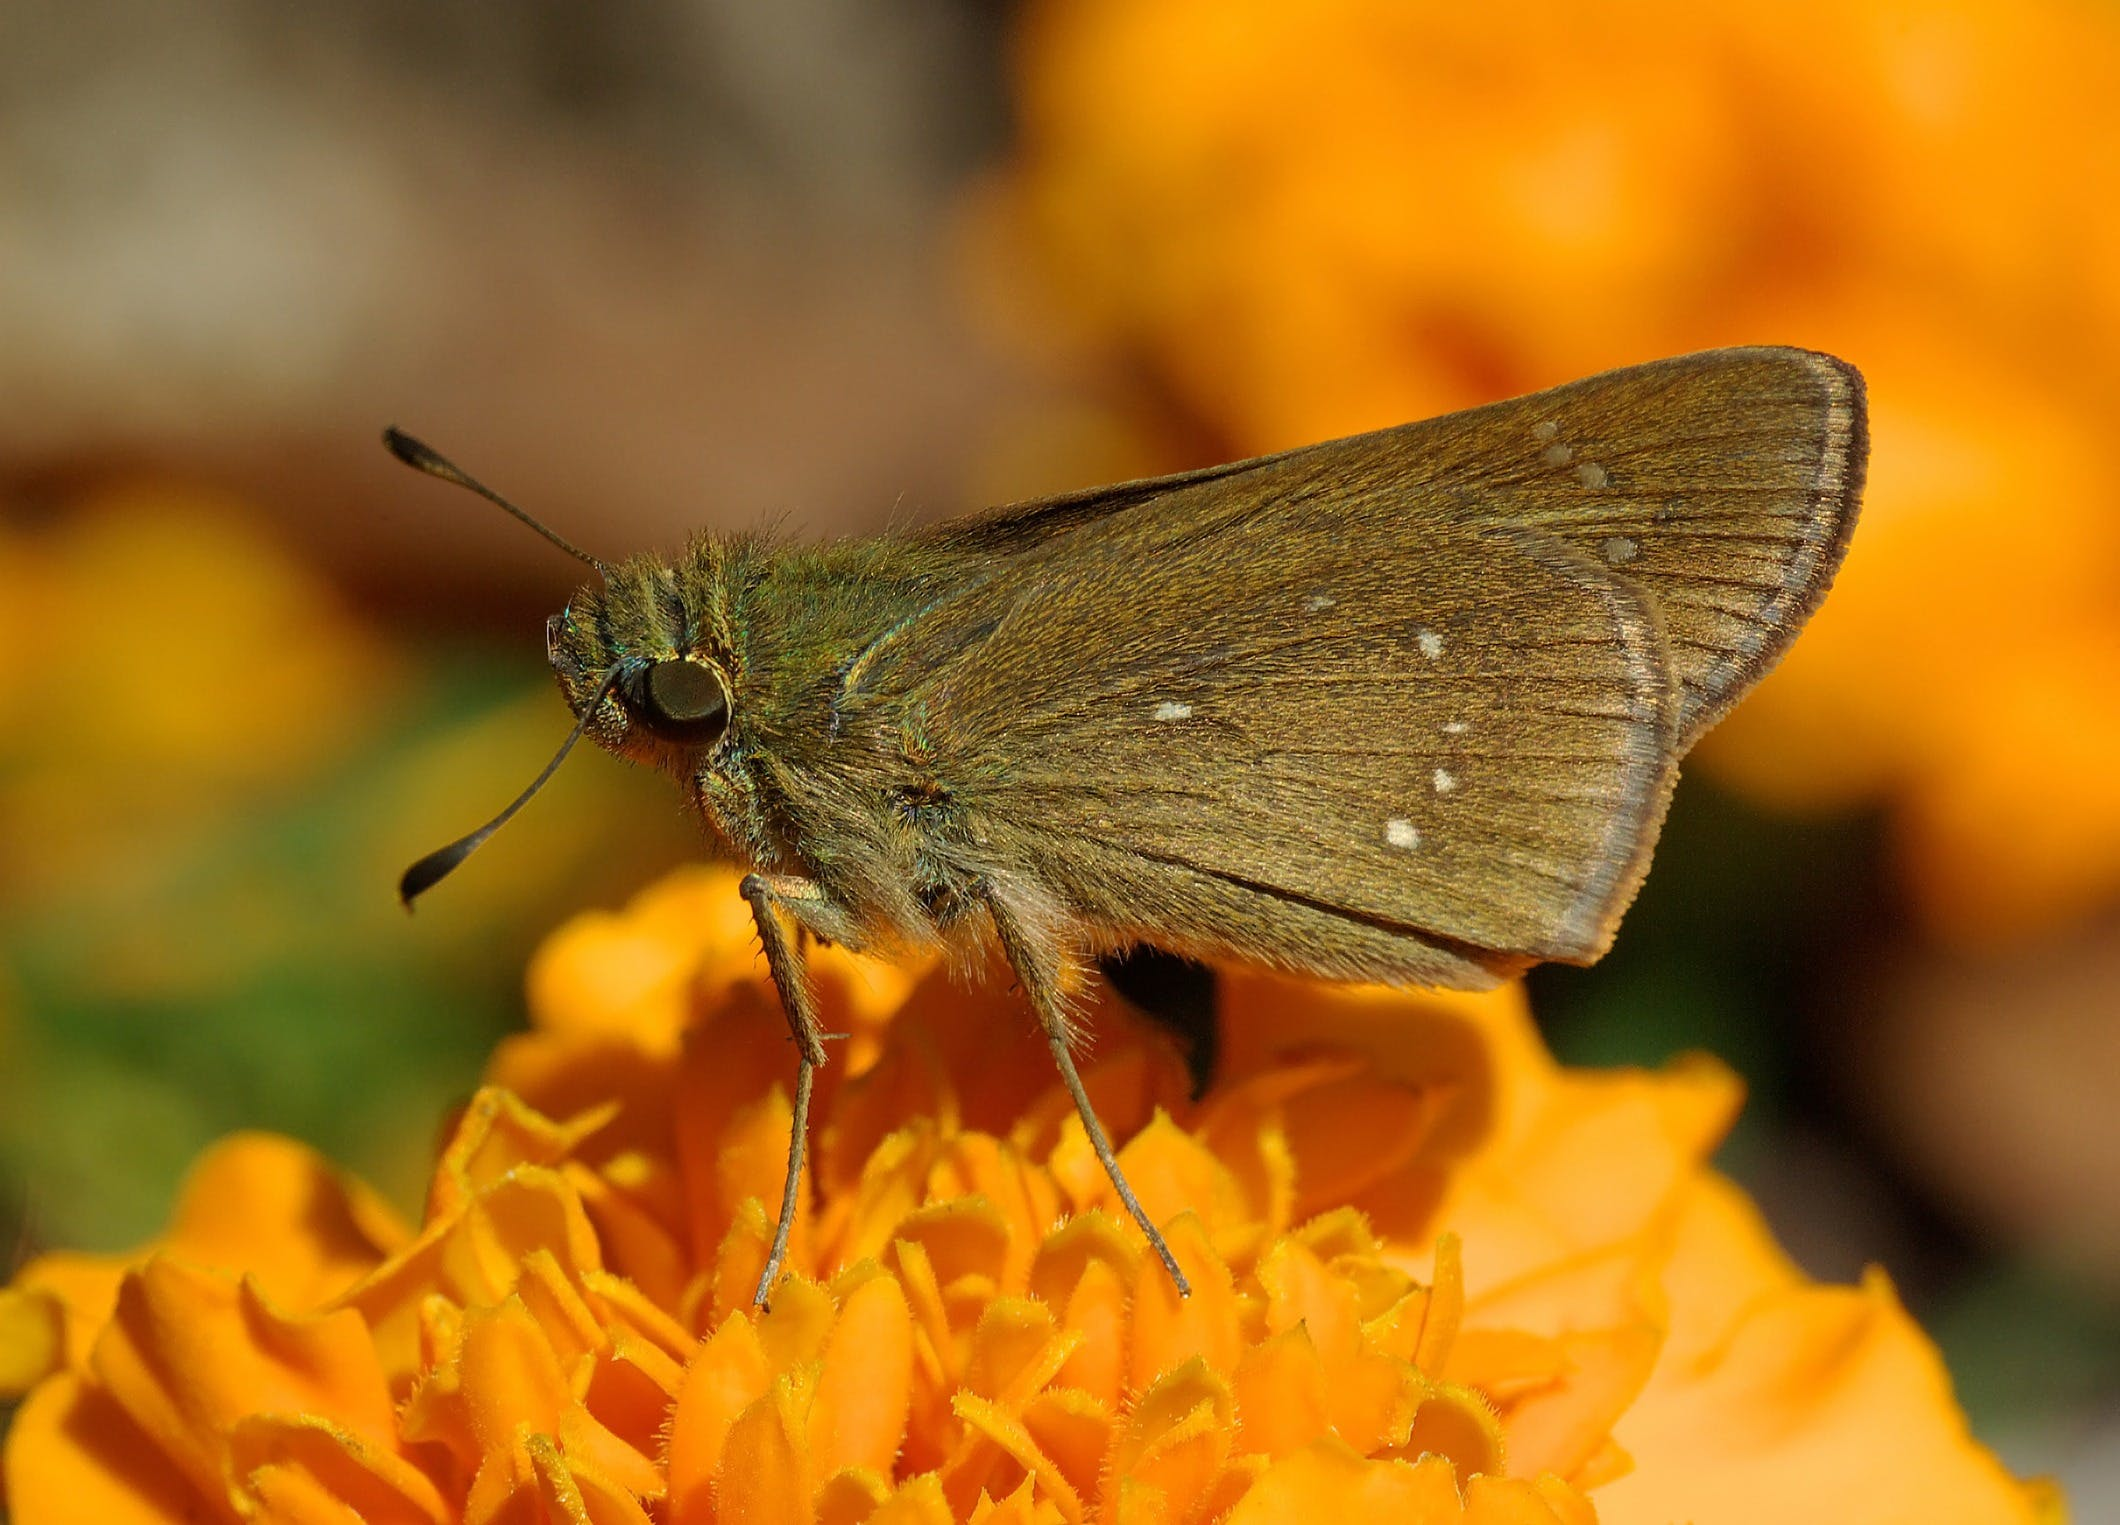 Black Butterfly on Top Orange Multi Petaled Flower Close Up Photography